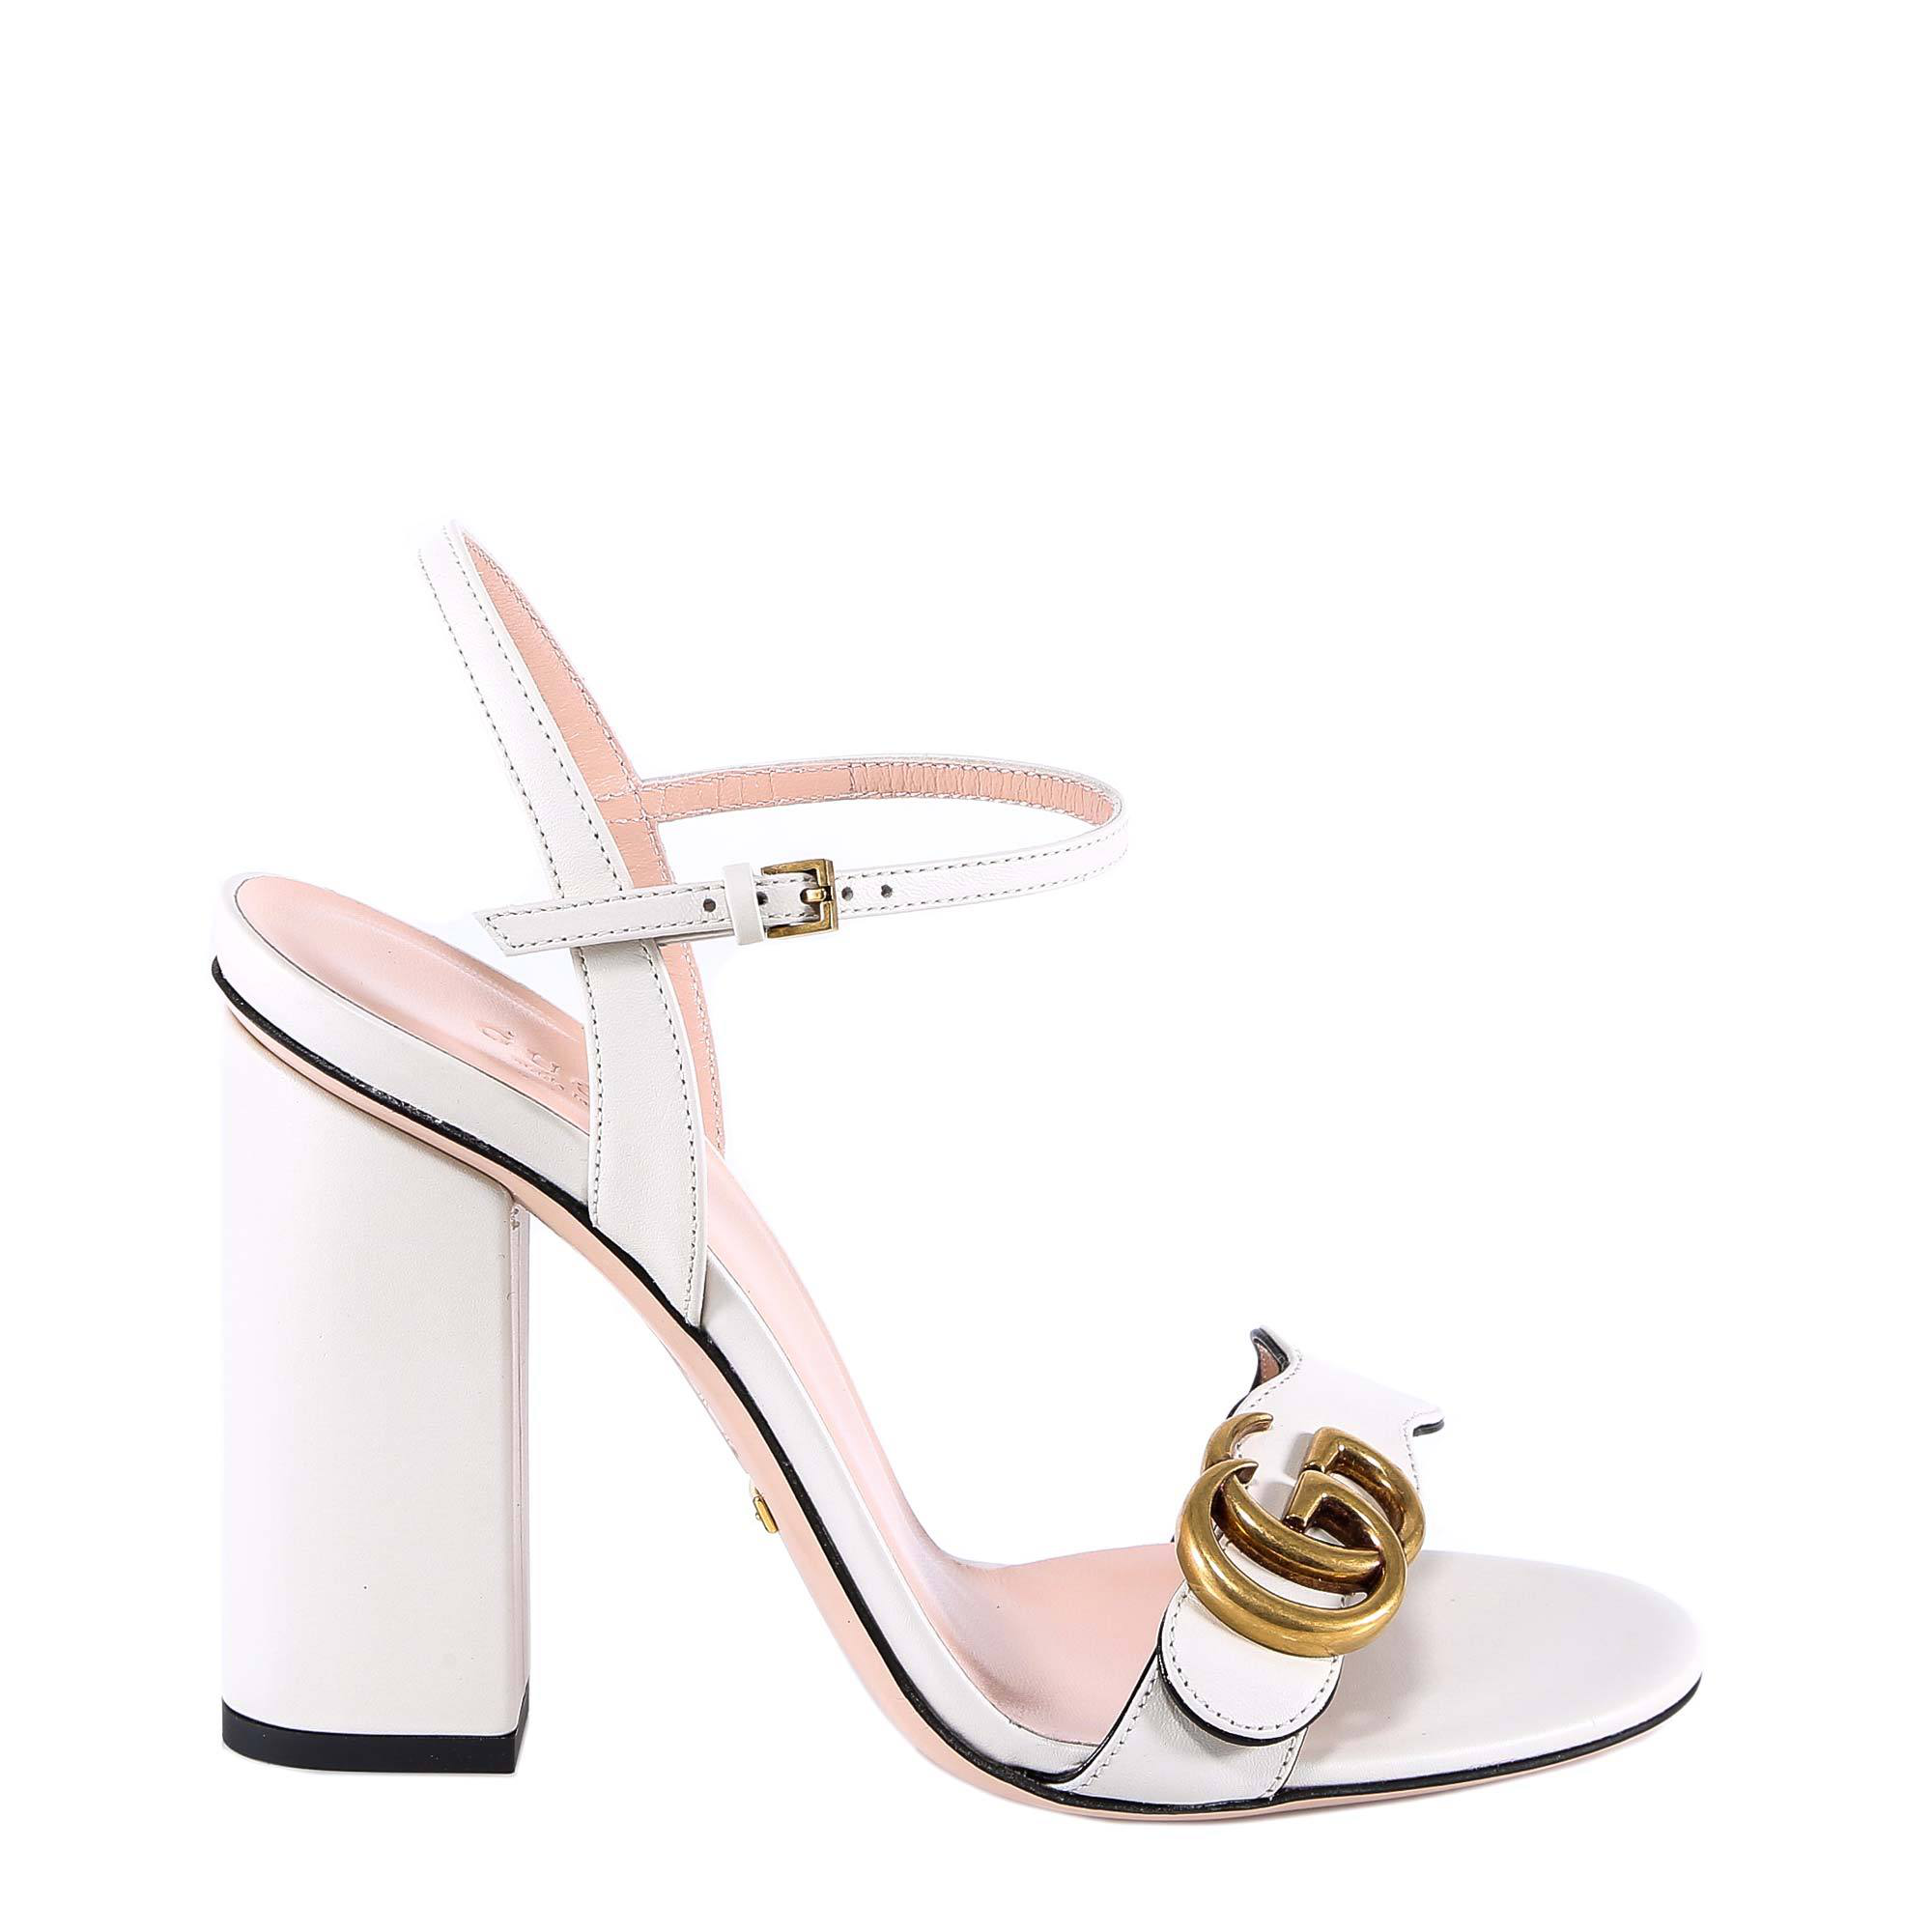 cc689b154 Gucci Gg Ankle Strap Sandals In White | ModeSens